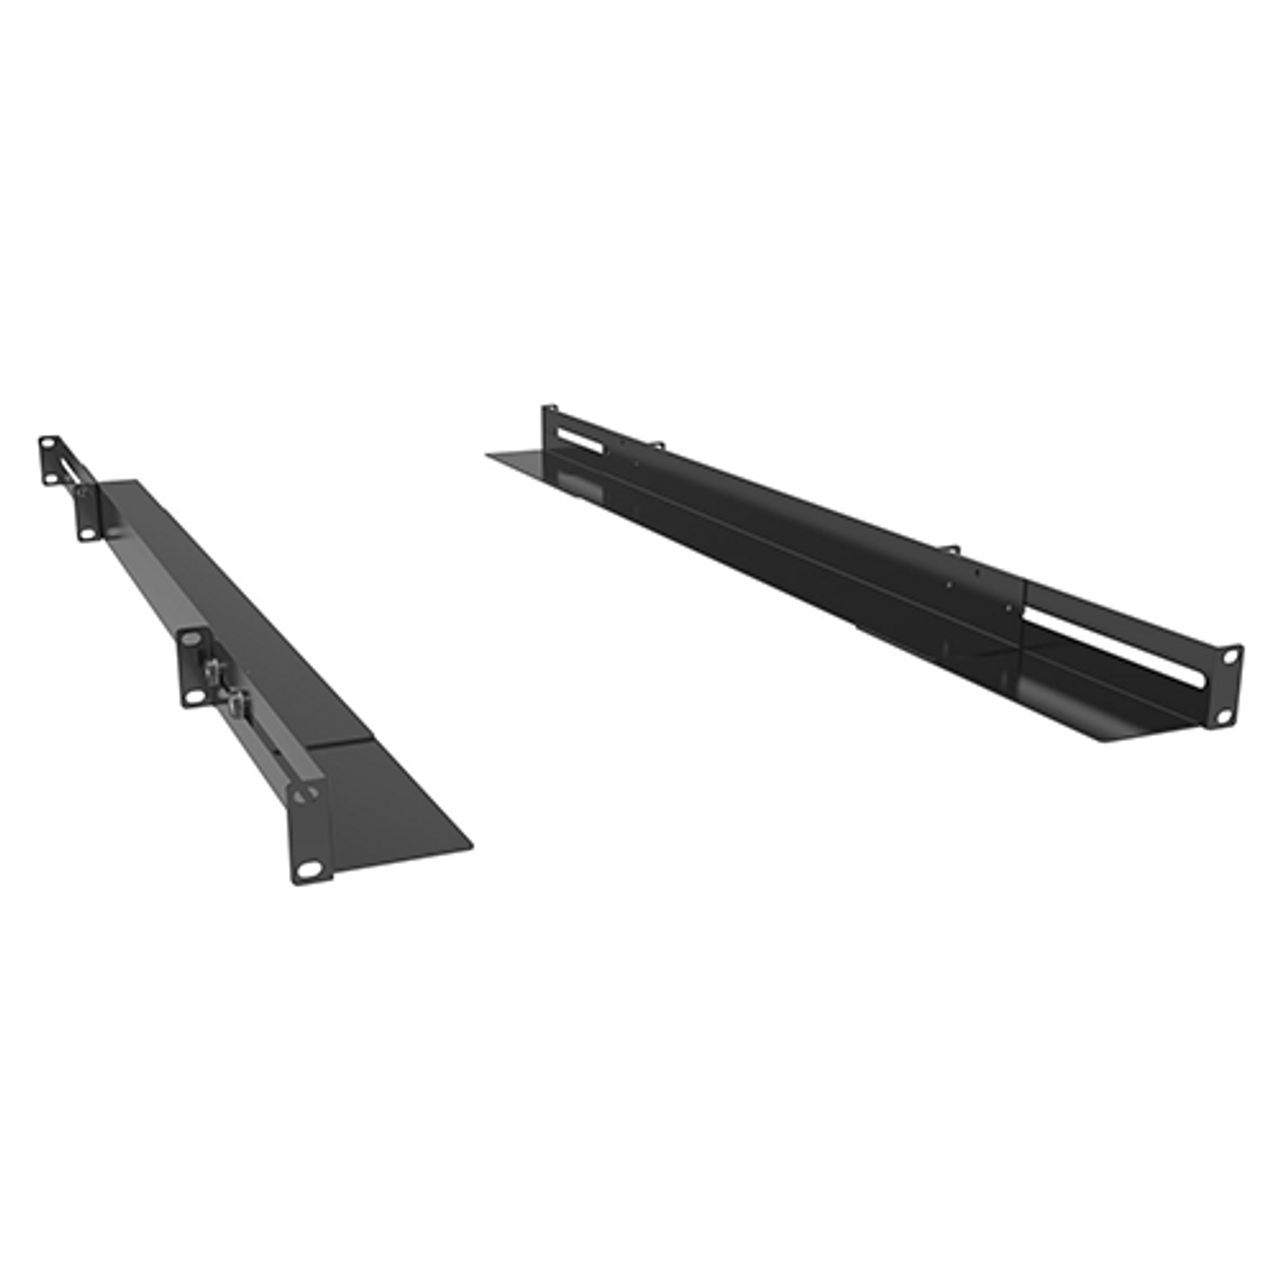 Adjustable Angle Bracket | Rack Mount Brackets | Rackmount